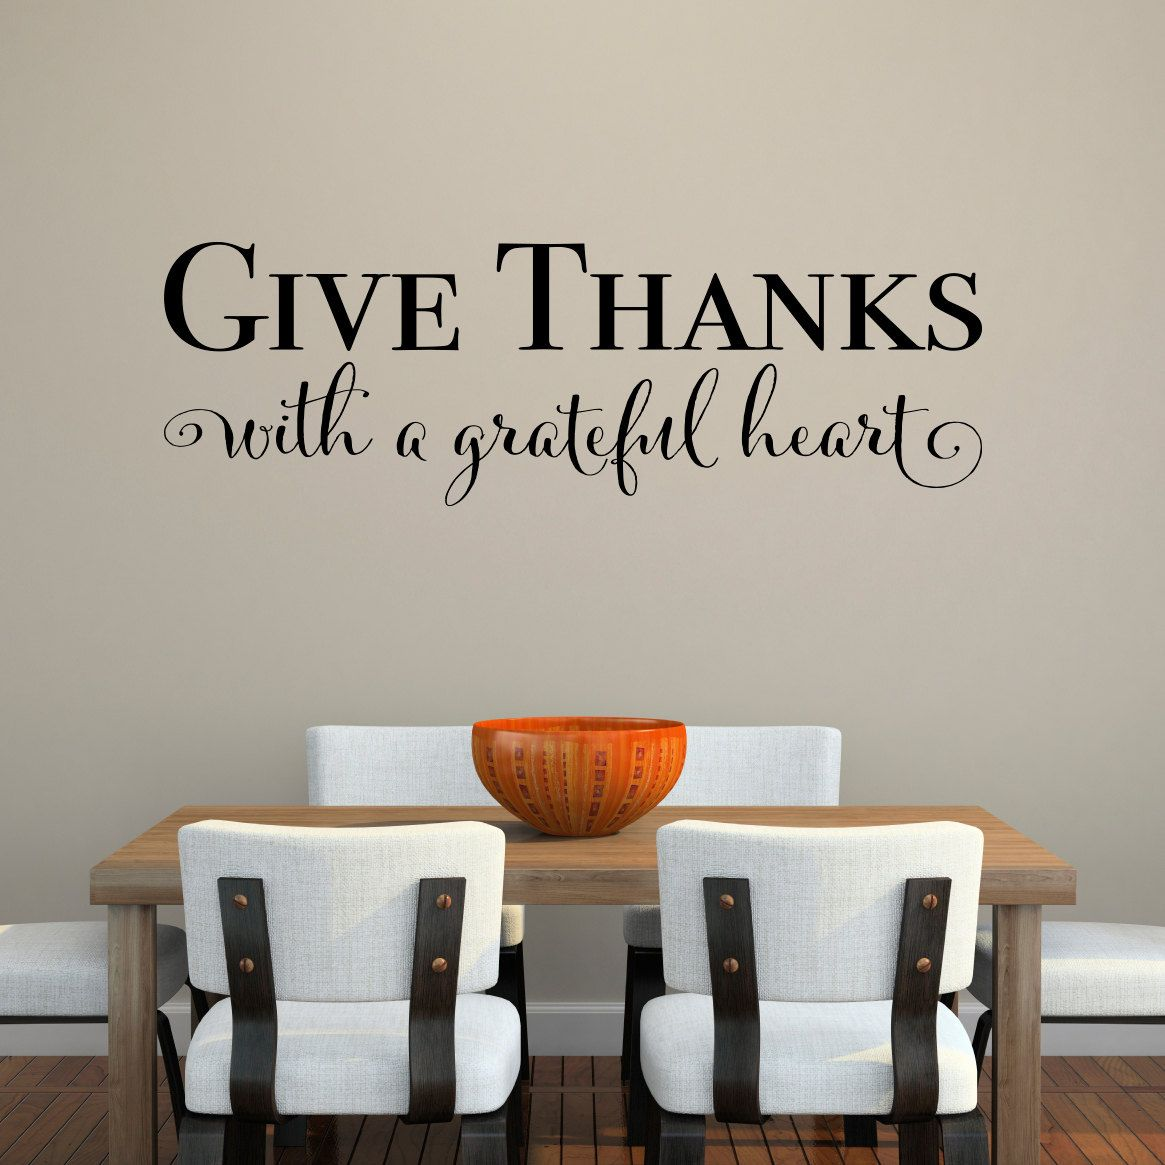 give thanks with a grateful heart decal give thanks quote dining room decor kitchen wall on kitchen decor quotes wall decals id=85491